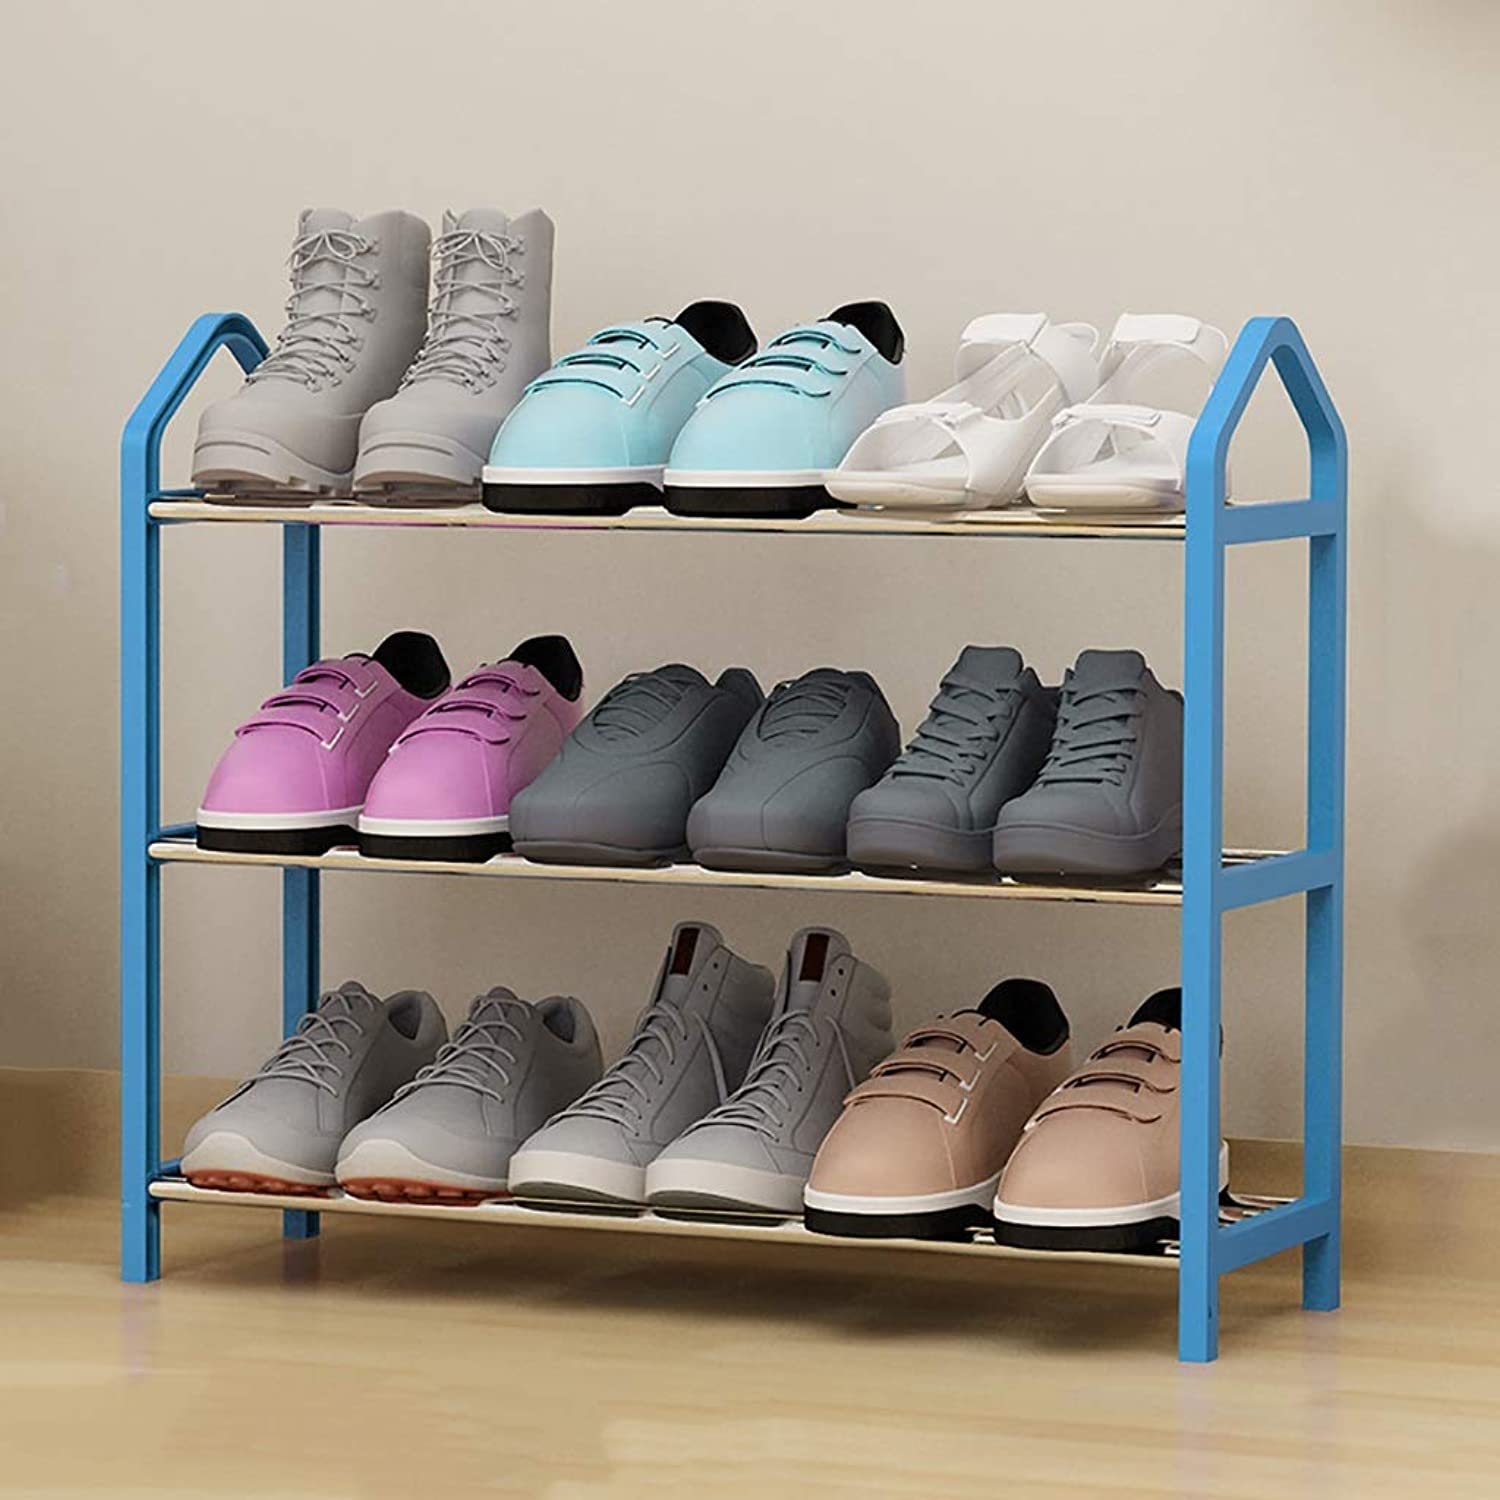 3 4 5 Layer shoes Rack Storage shoes Cabinet Small shoes Shelf Storage Shelf Space Saving Household Dorm Room Doorway Living Room Steel Pipe (color   bluee, Size   64  20  45cm)